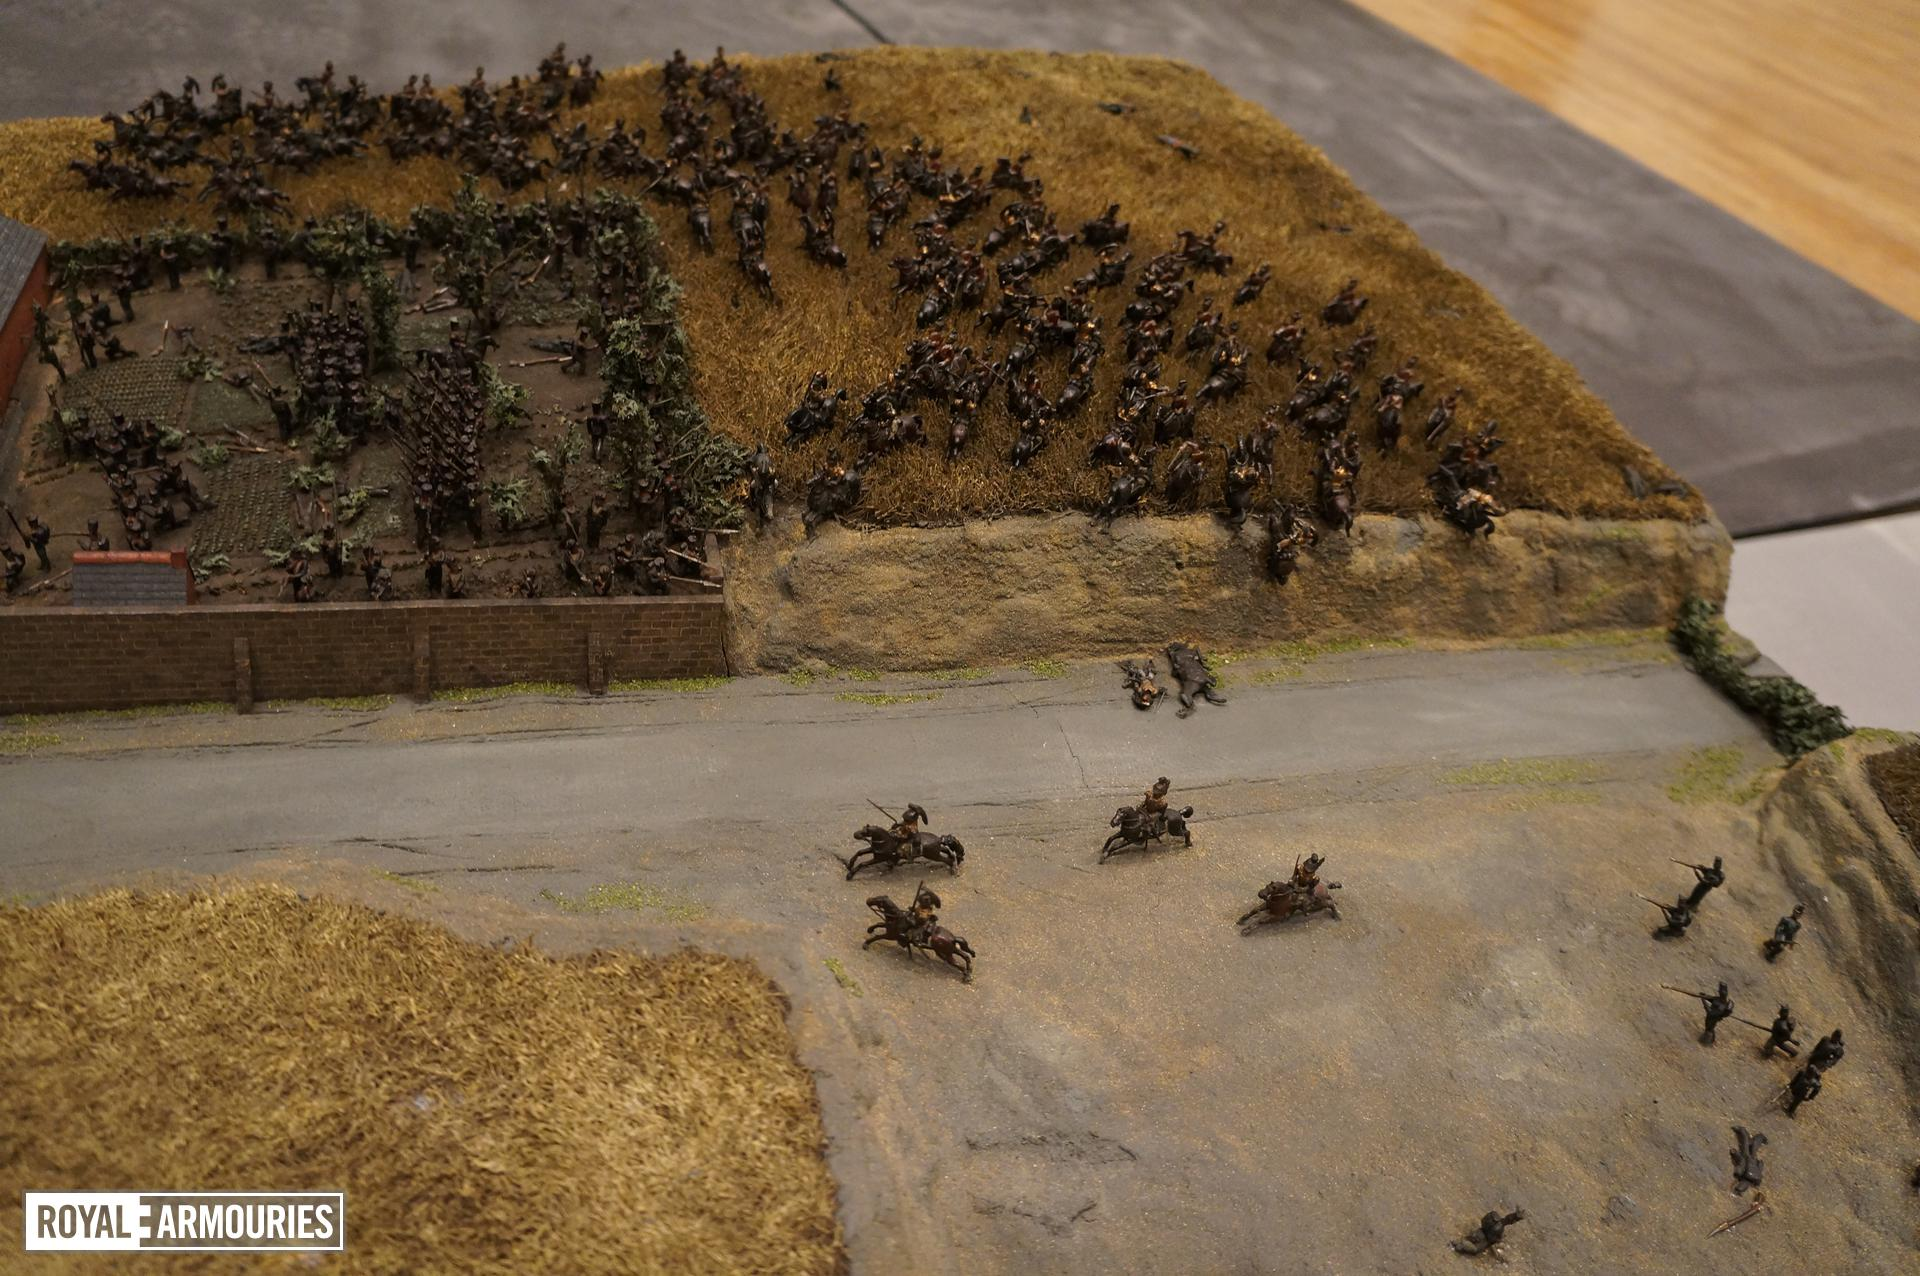 Close up photograph showing several model soldiers fighting in farm roads and fields, some on horseback